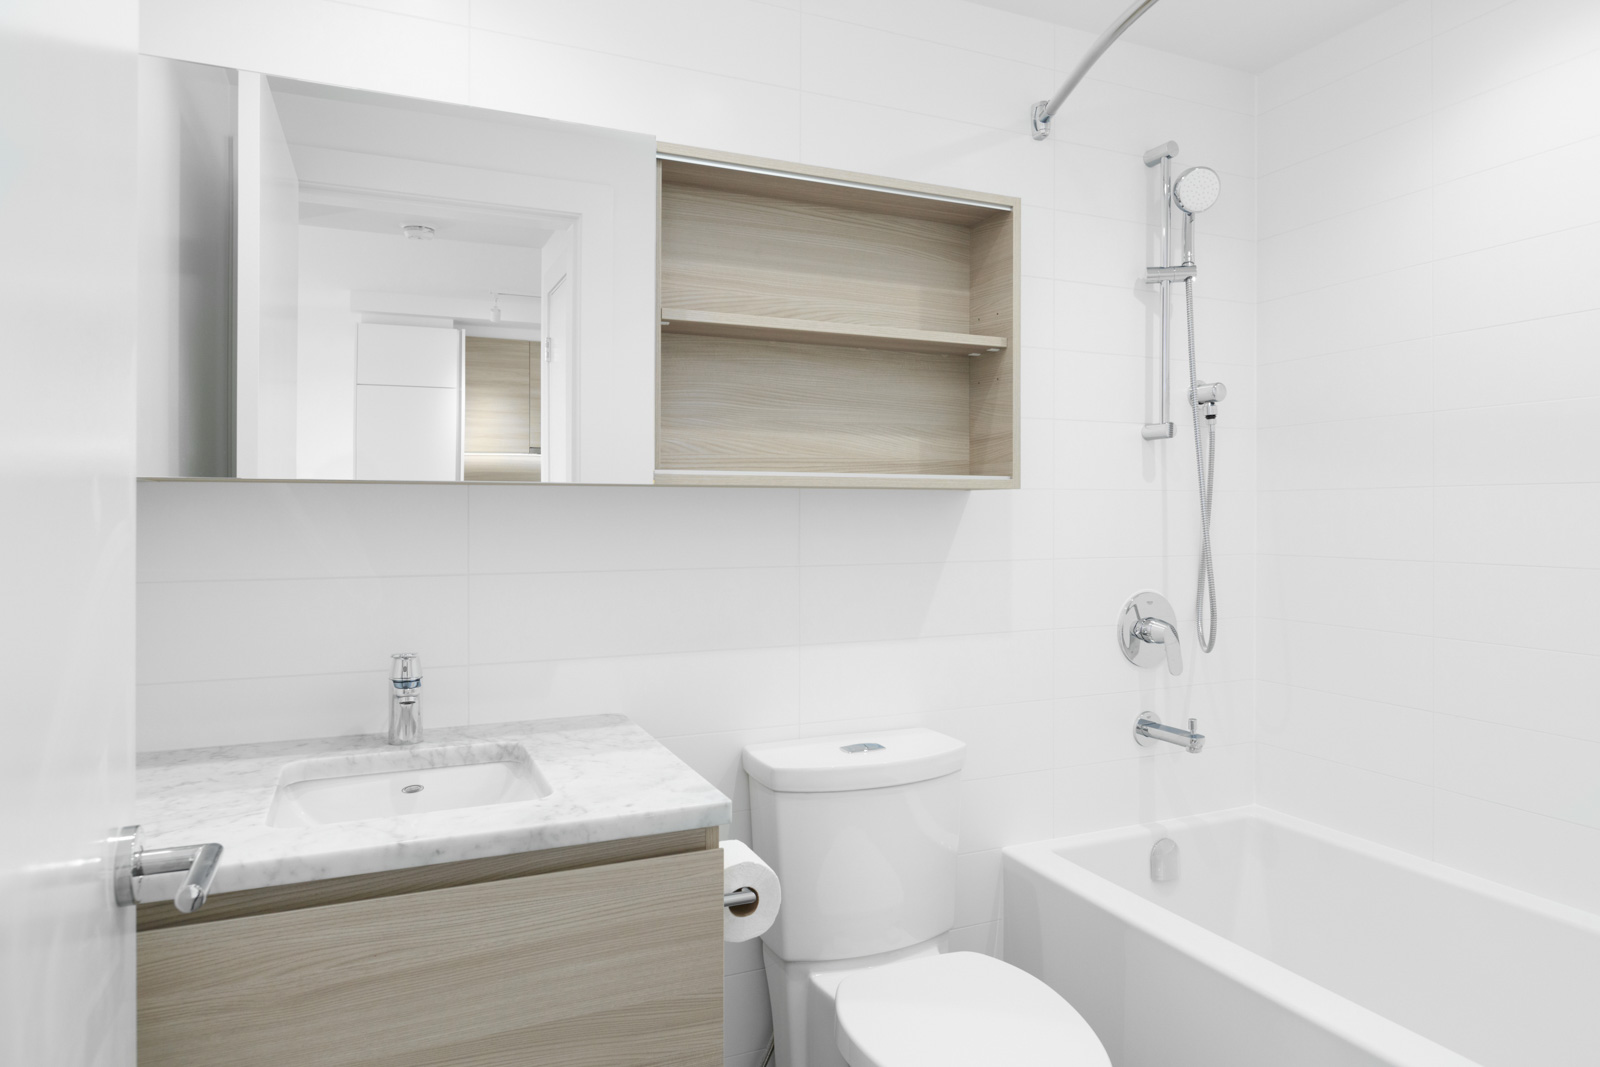 condo bathroom with vanity and sink on left and toilet in middle with shelving above and shower on right